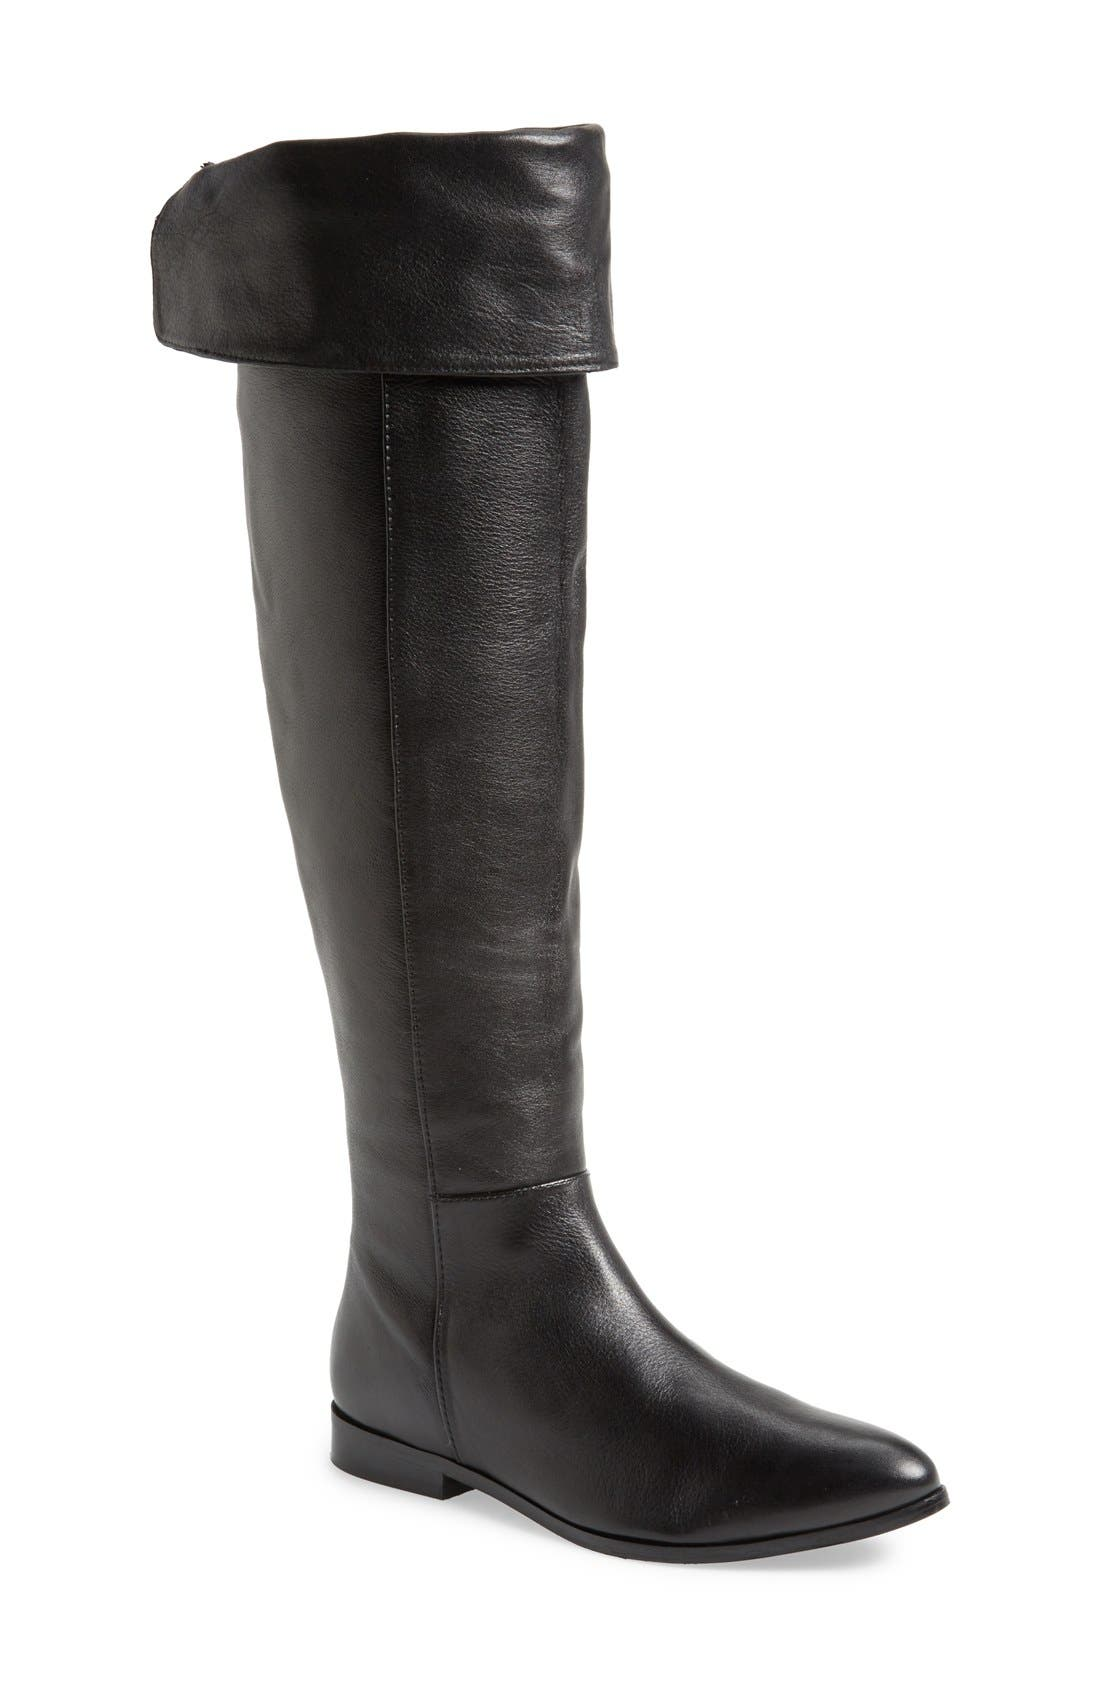 'Victory' Over the Knee Boot,                             Main thumbnail 1, color,                             001